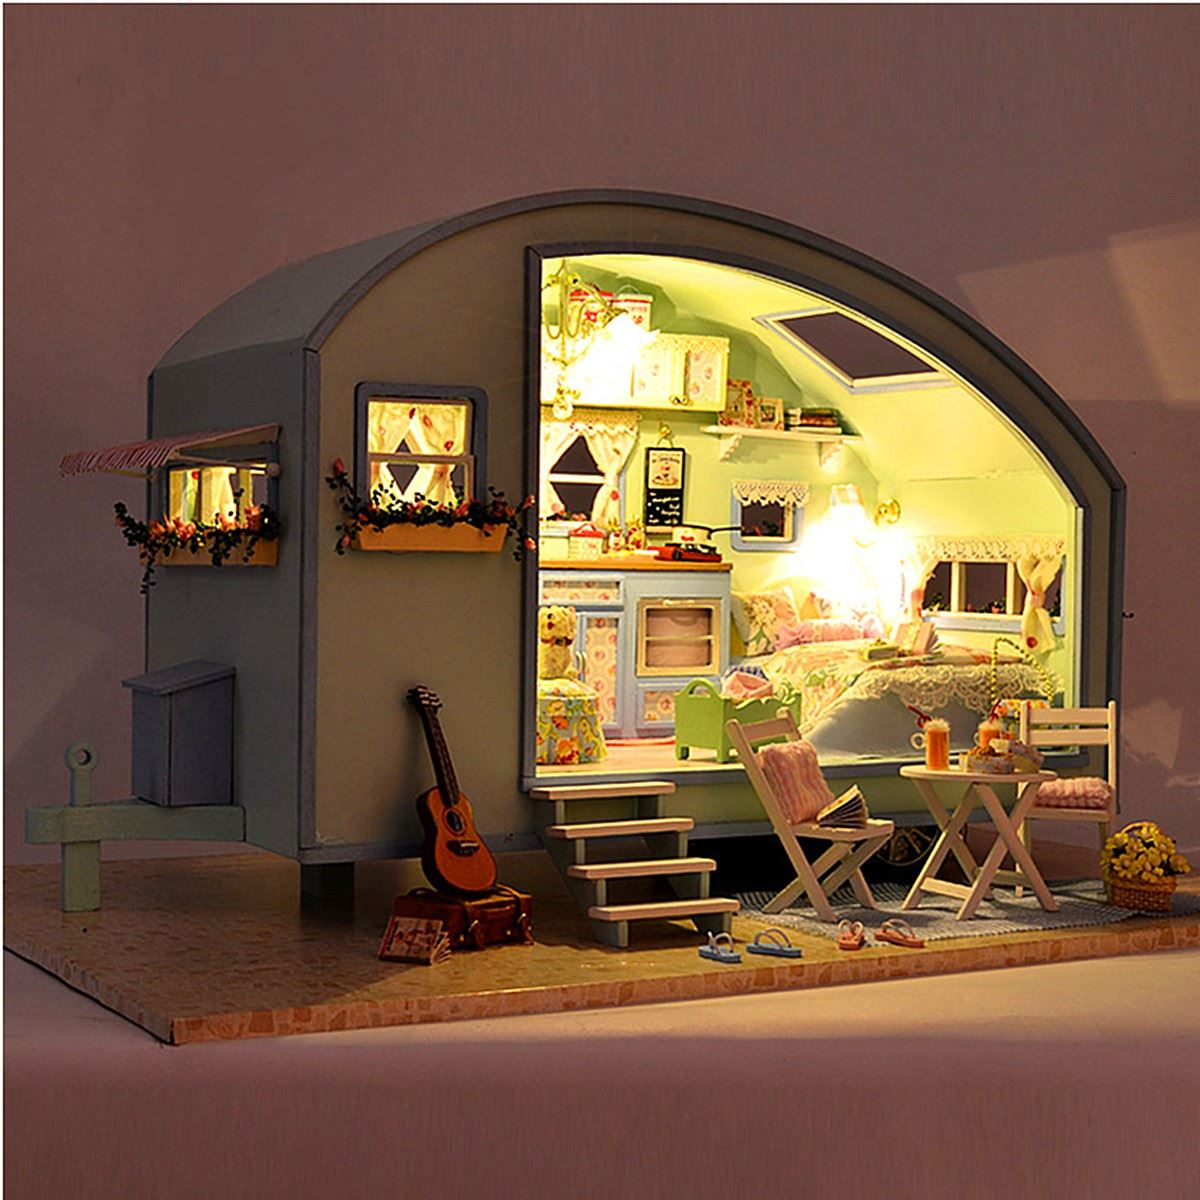 Dollhouse Miniature Wooden Assembled With Voice activated Light Music Handmade kits Building model Travel Caravan Girls Gift-in Doll Houses from Toys ... & Dollhouse Miniature Wooden Assembled With Voice activated Light ...